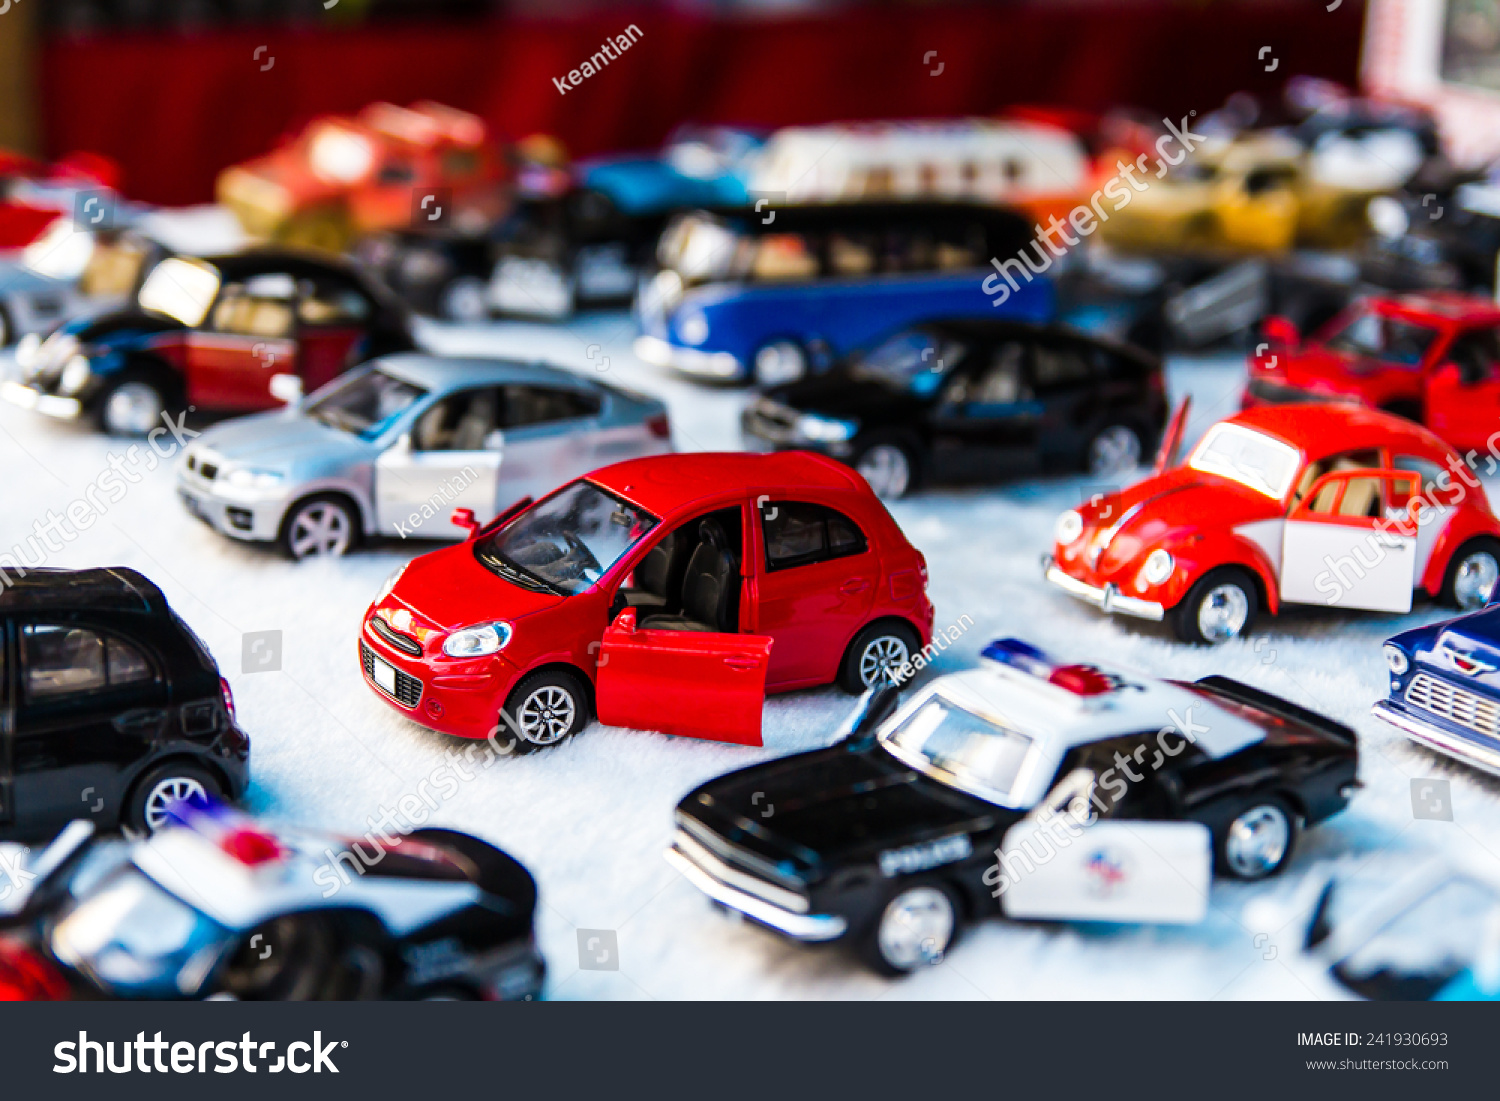 Fabric Roads For Toy Cars : Many small toy cars lined on stock photo